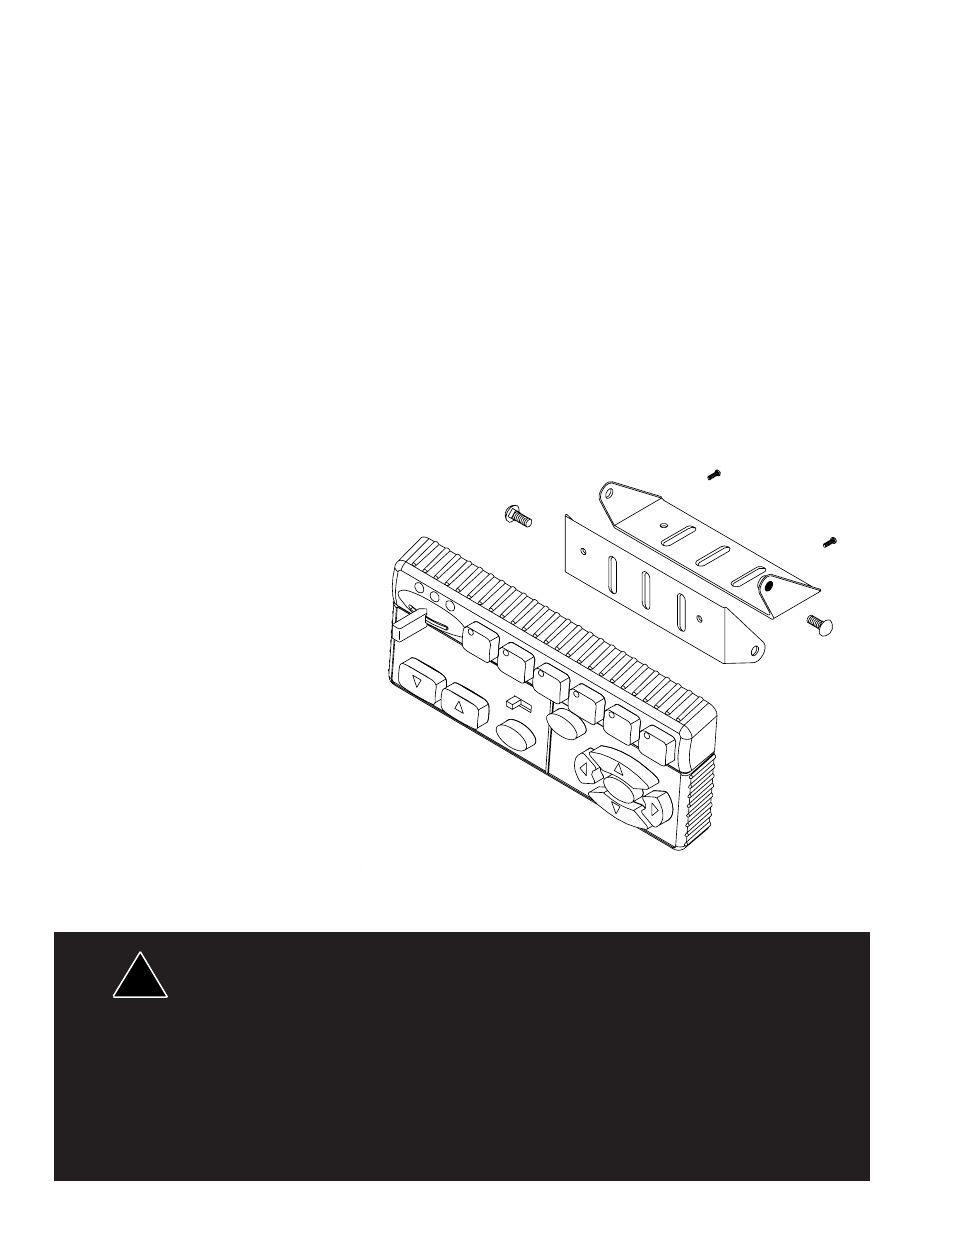 Unpacking Pre Installation Code 3 Rls User Manual Page 4 28 Push On Off Relay Switch